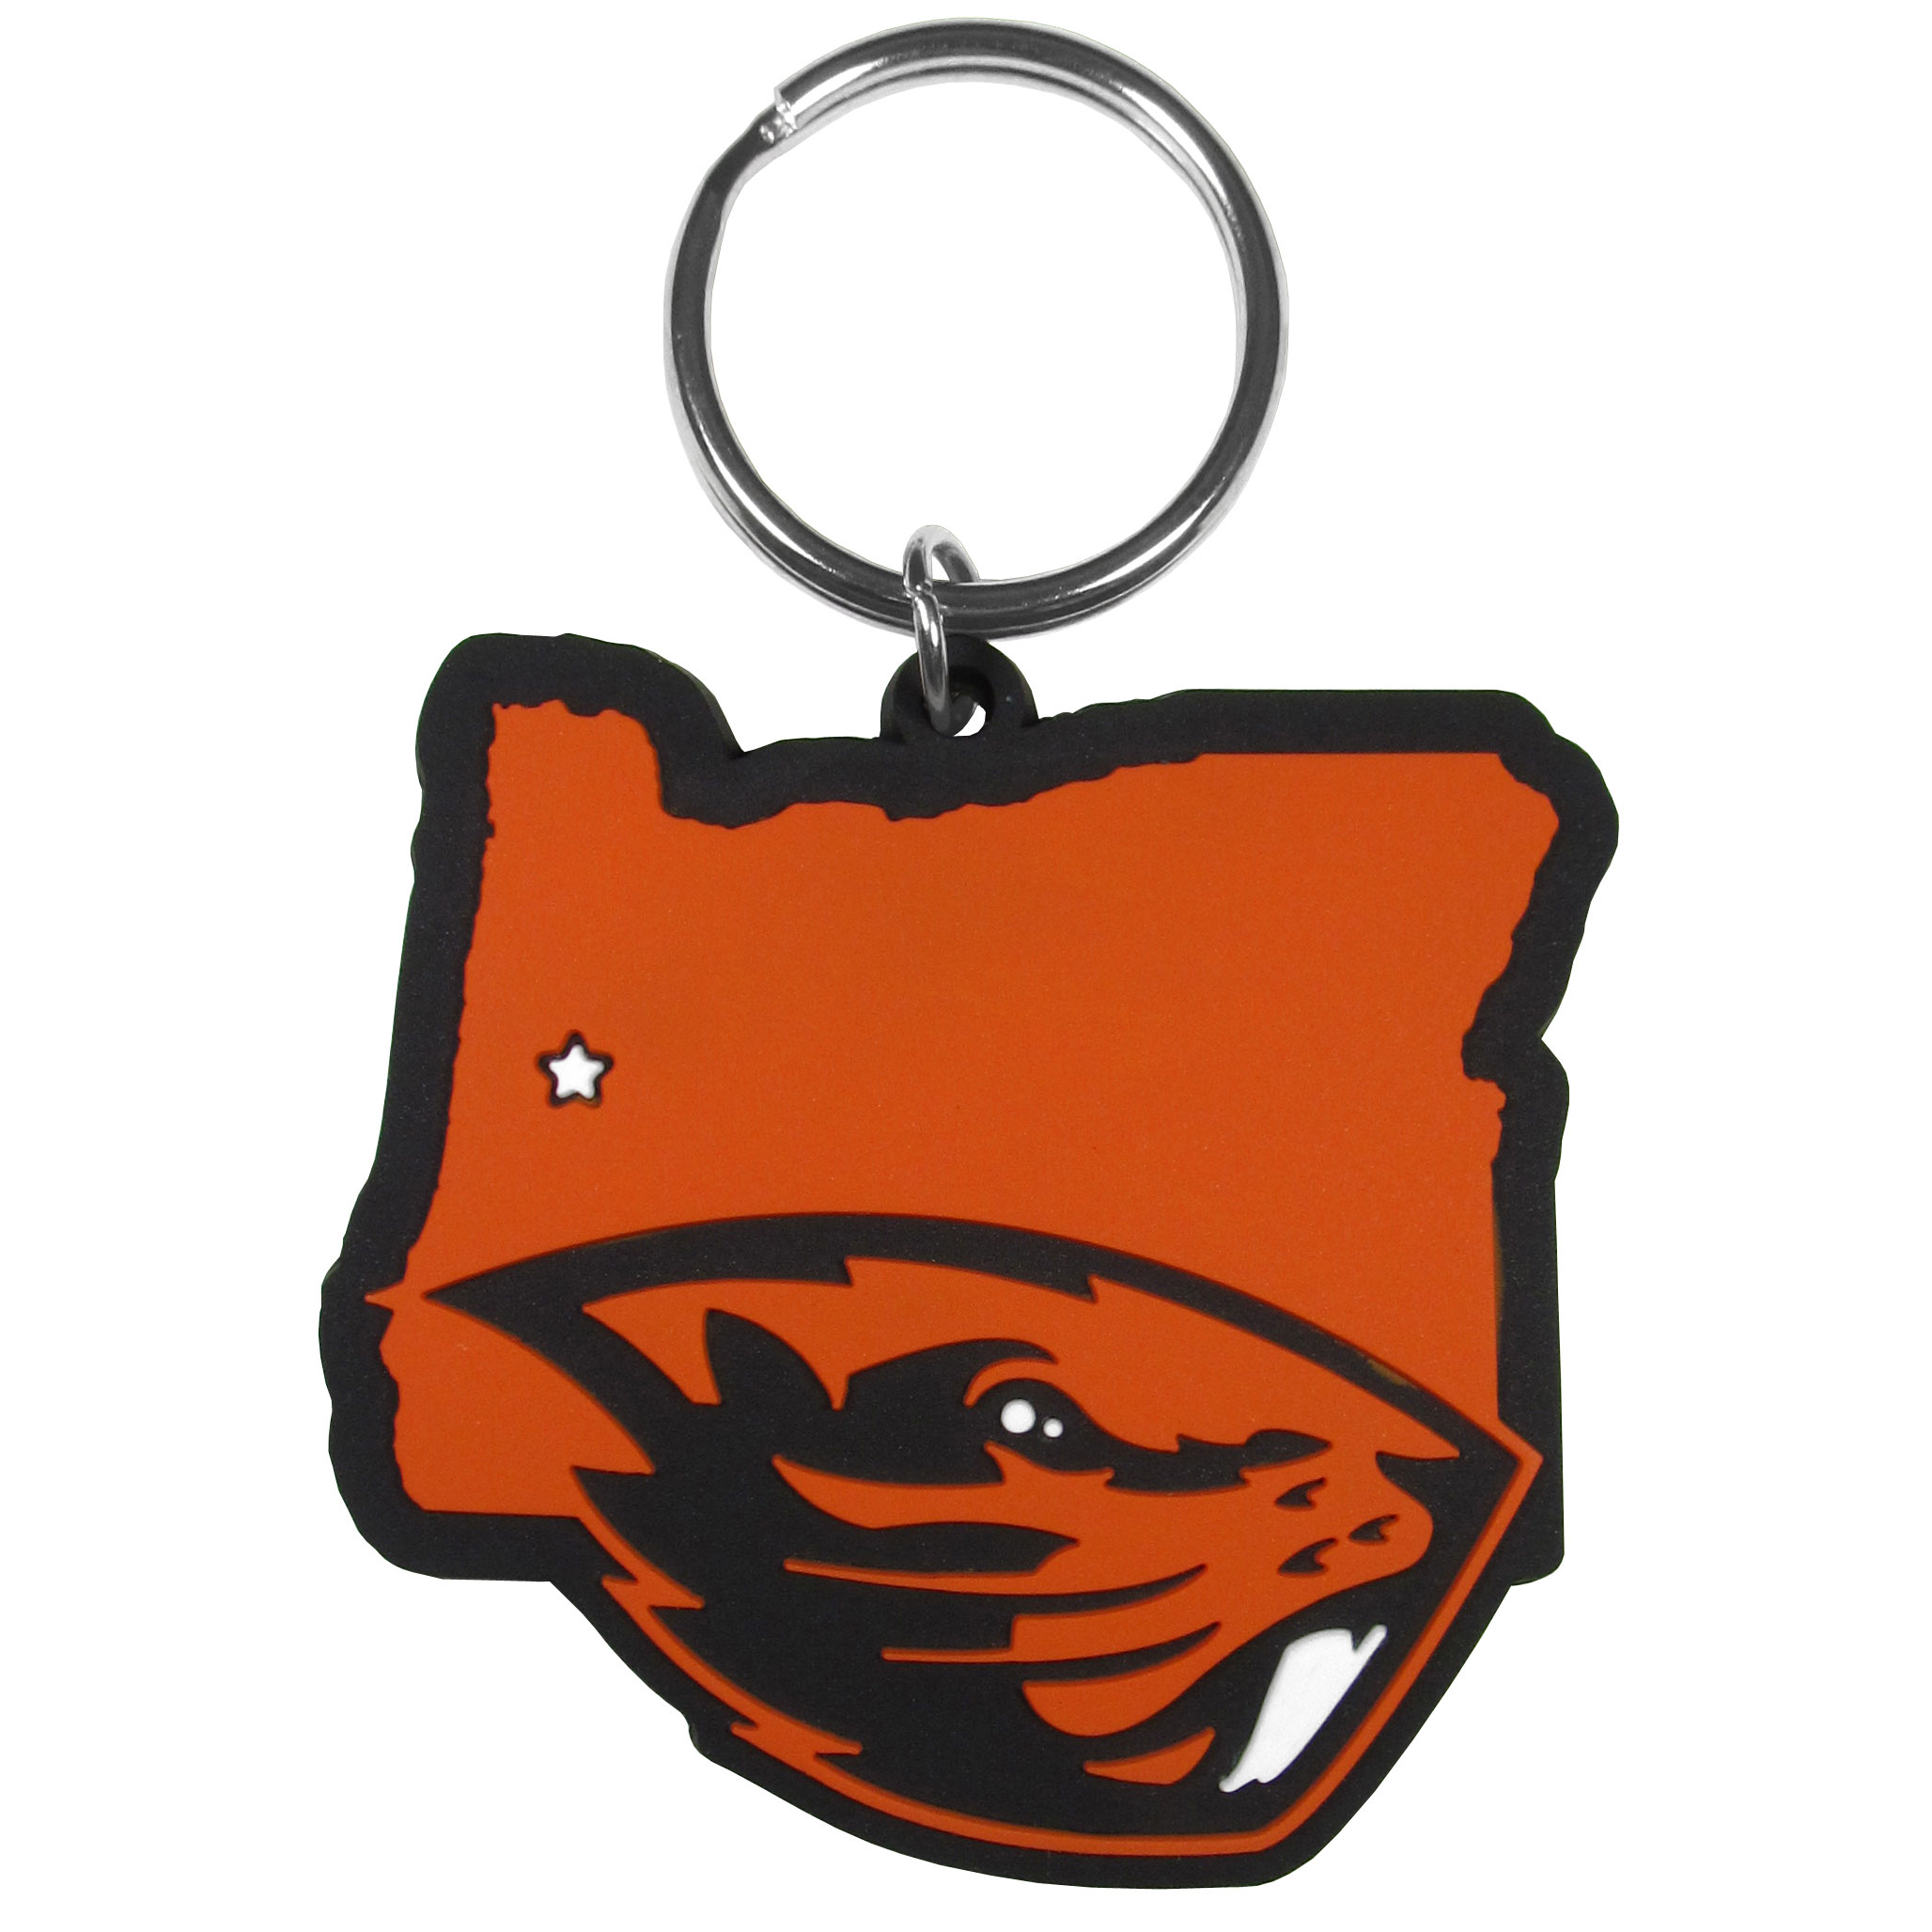 Oregon St. Beavers Home State Flexi Key Chain - Our flexible Oregon St. Beavers key chains are a fun way to carry your team with you. The pliable rubber material is extremely durable and the layered colors add a great 3D look to the key chain. This is really where quality and a great price meet to create a true fan favorite.